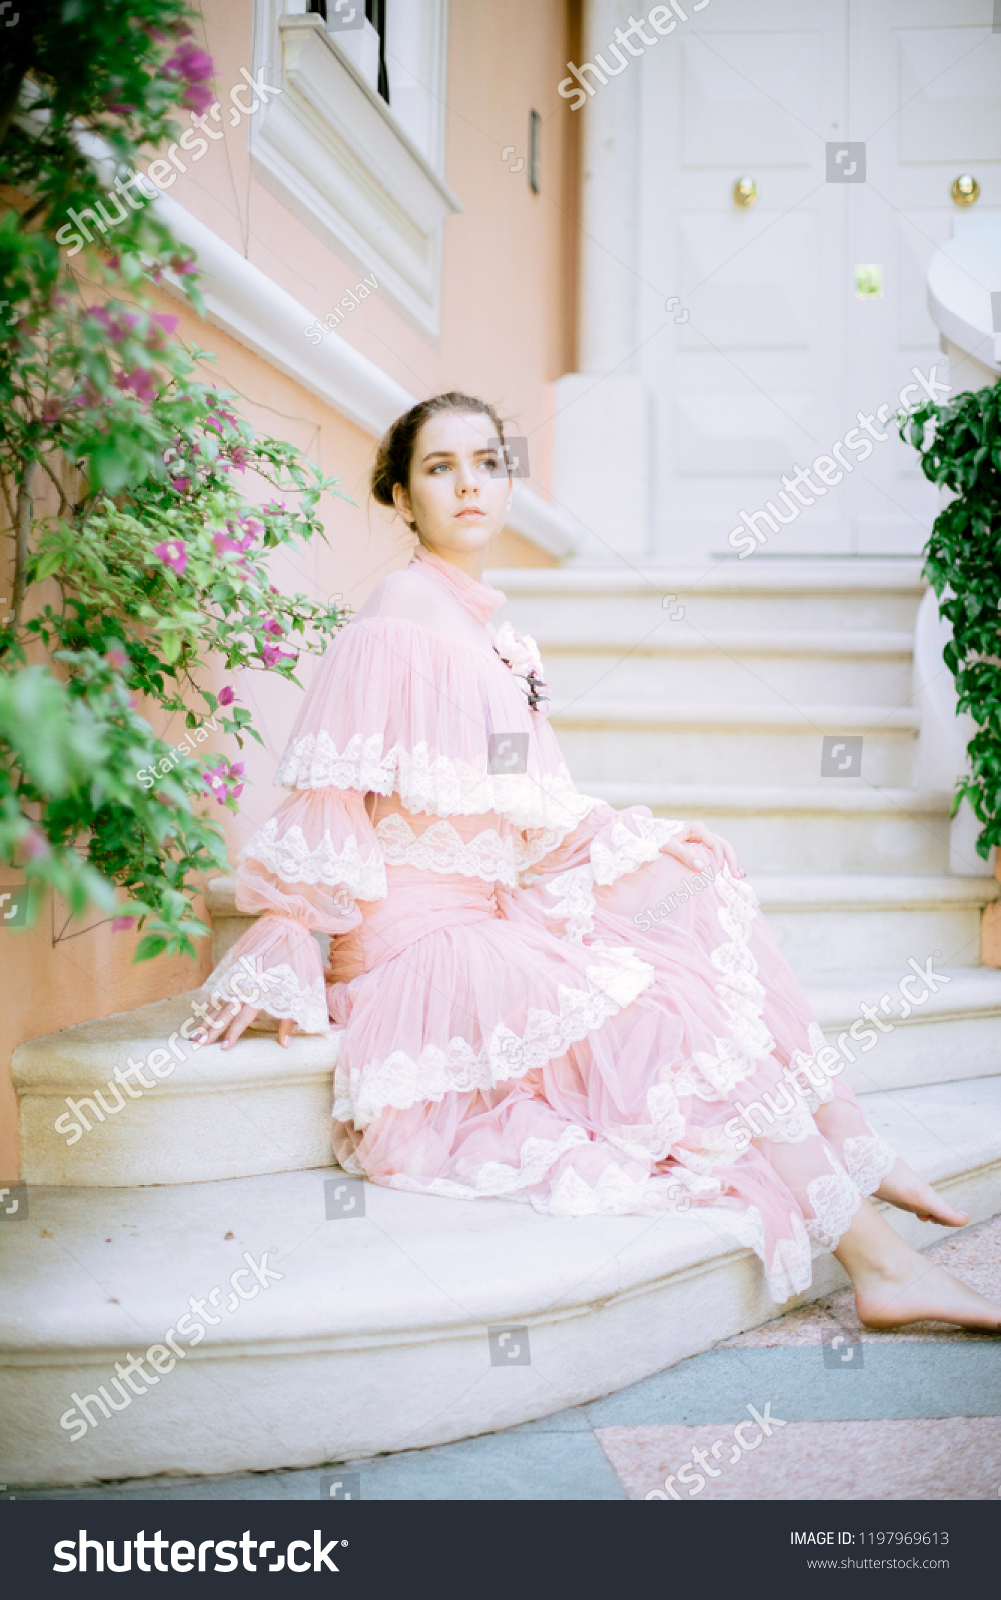 https://image.shutterstock.com/z/stock-photo-very-beautiful-young-girl-with-blond-hair-with-a-nominal-transparent-pink-dress-on-the-background-1197969613.jpg